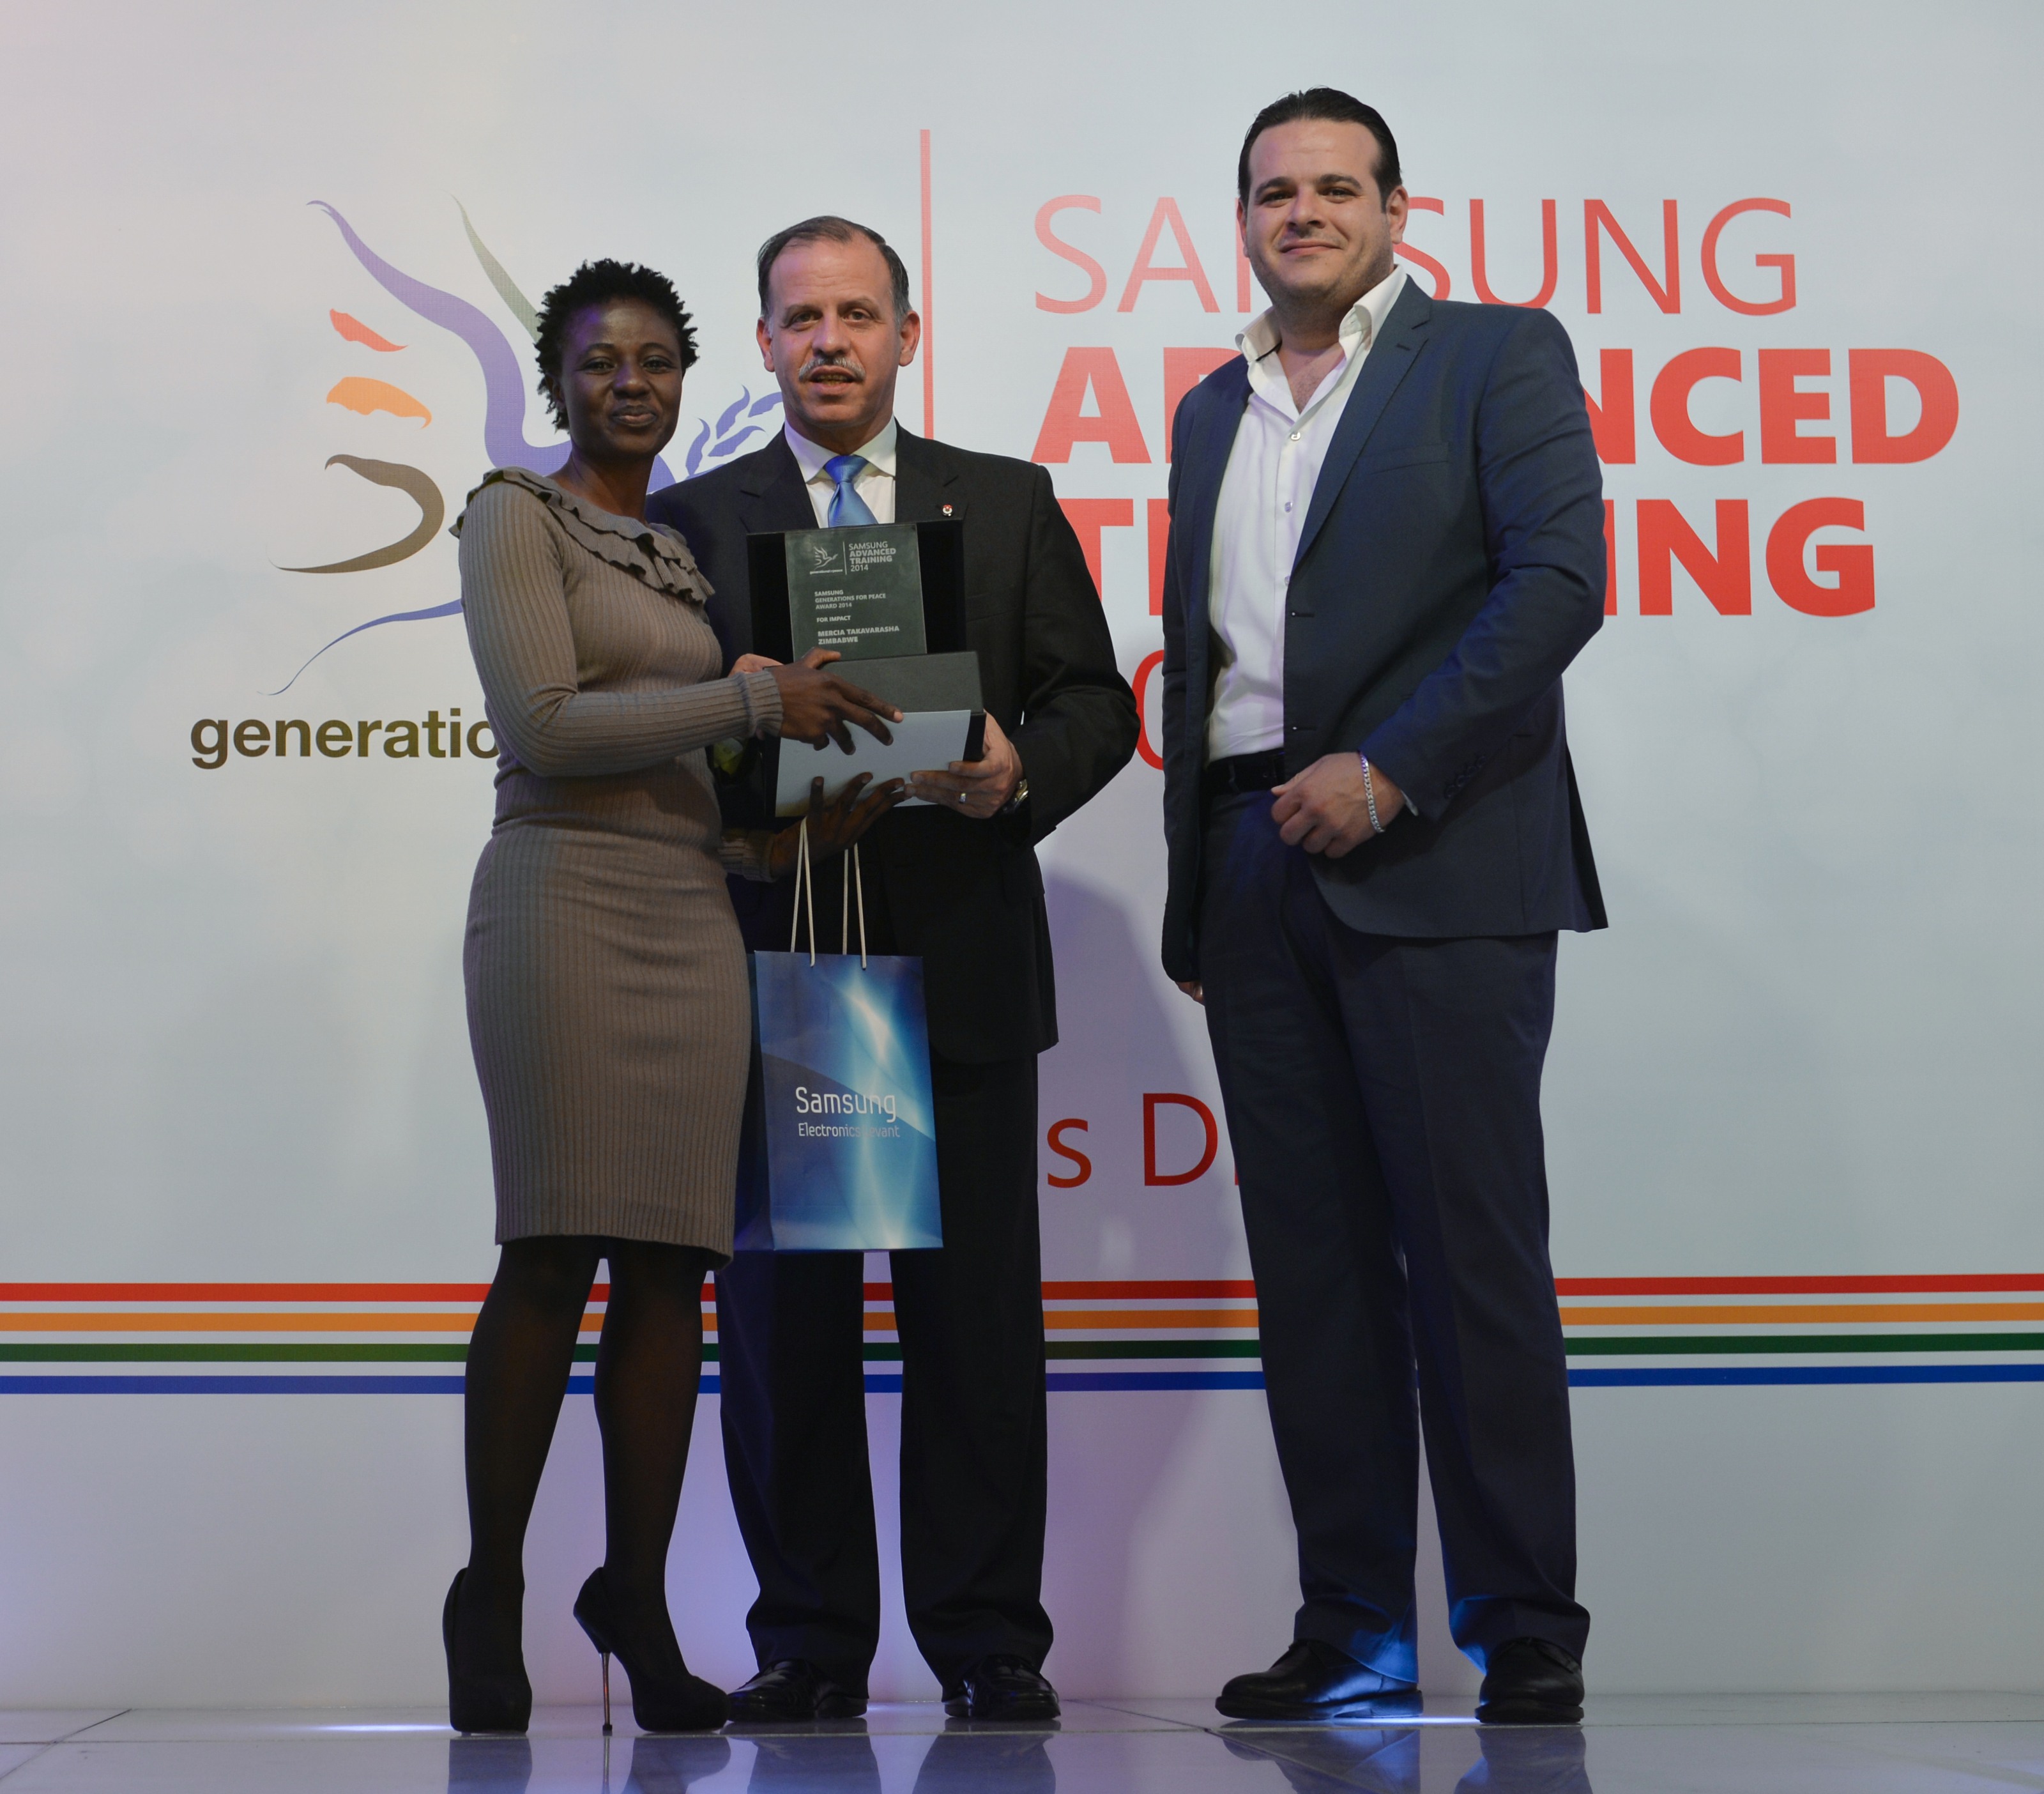 Mercia receiving her award from HRH Prince Feisal Al Hussein and Mr Fadi Awni Abu Shamat (Samsung Levant), and their fellow facilitators